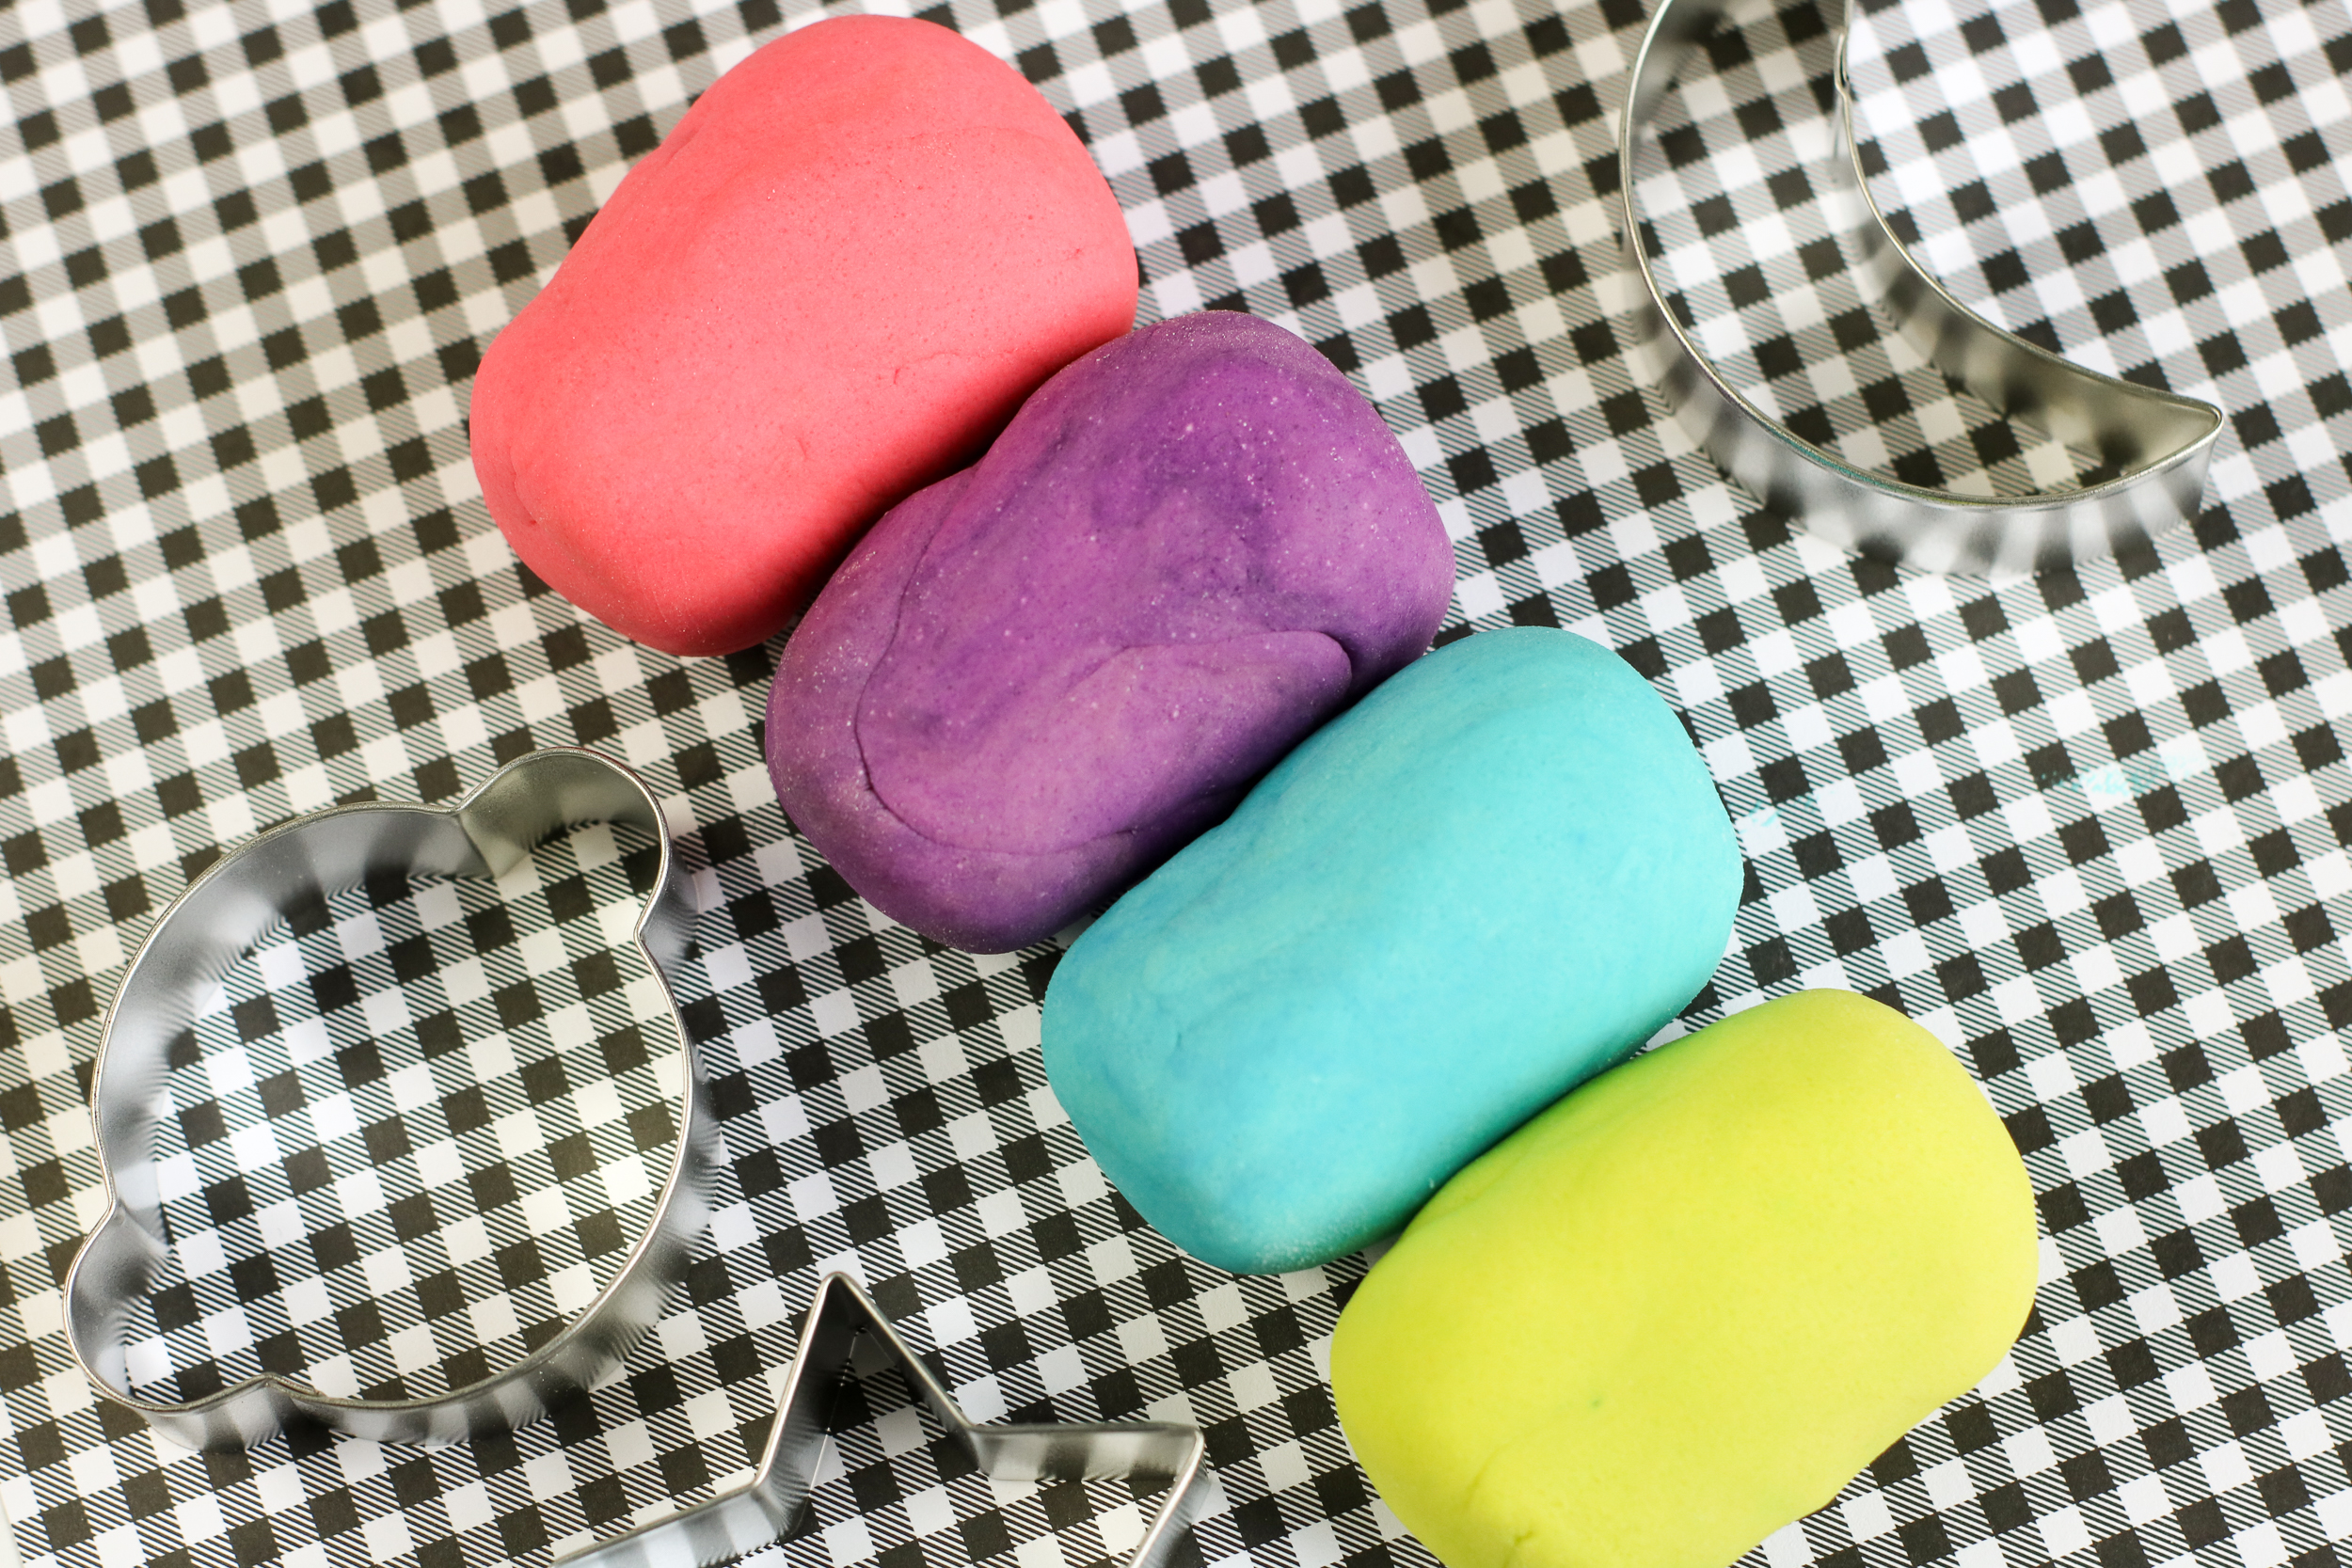 No Cook Glow in the Dark Play-dough